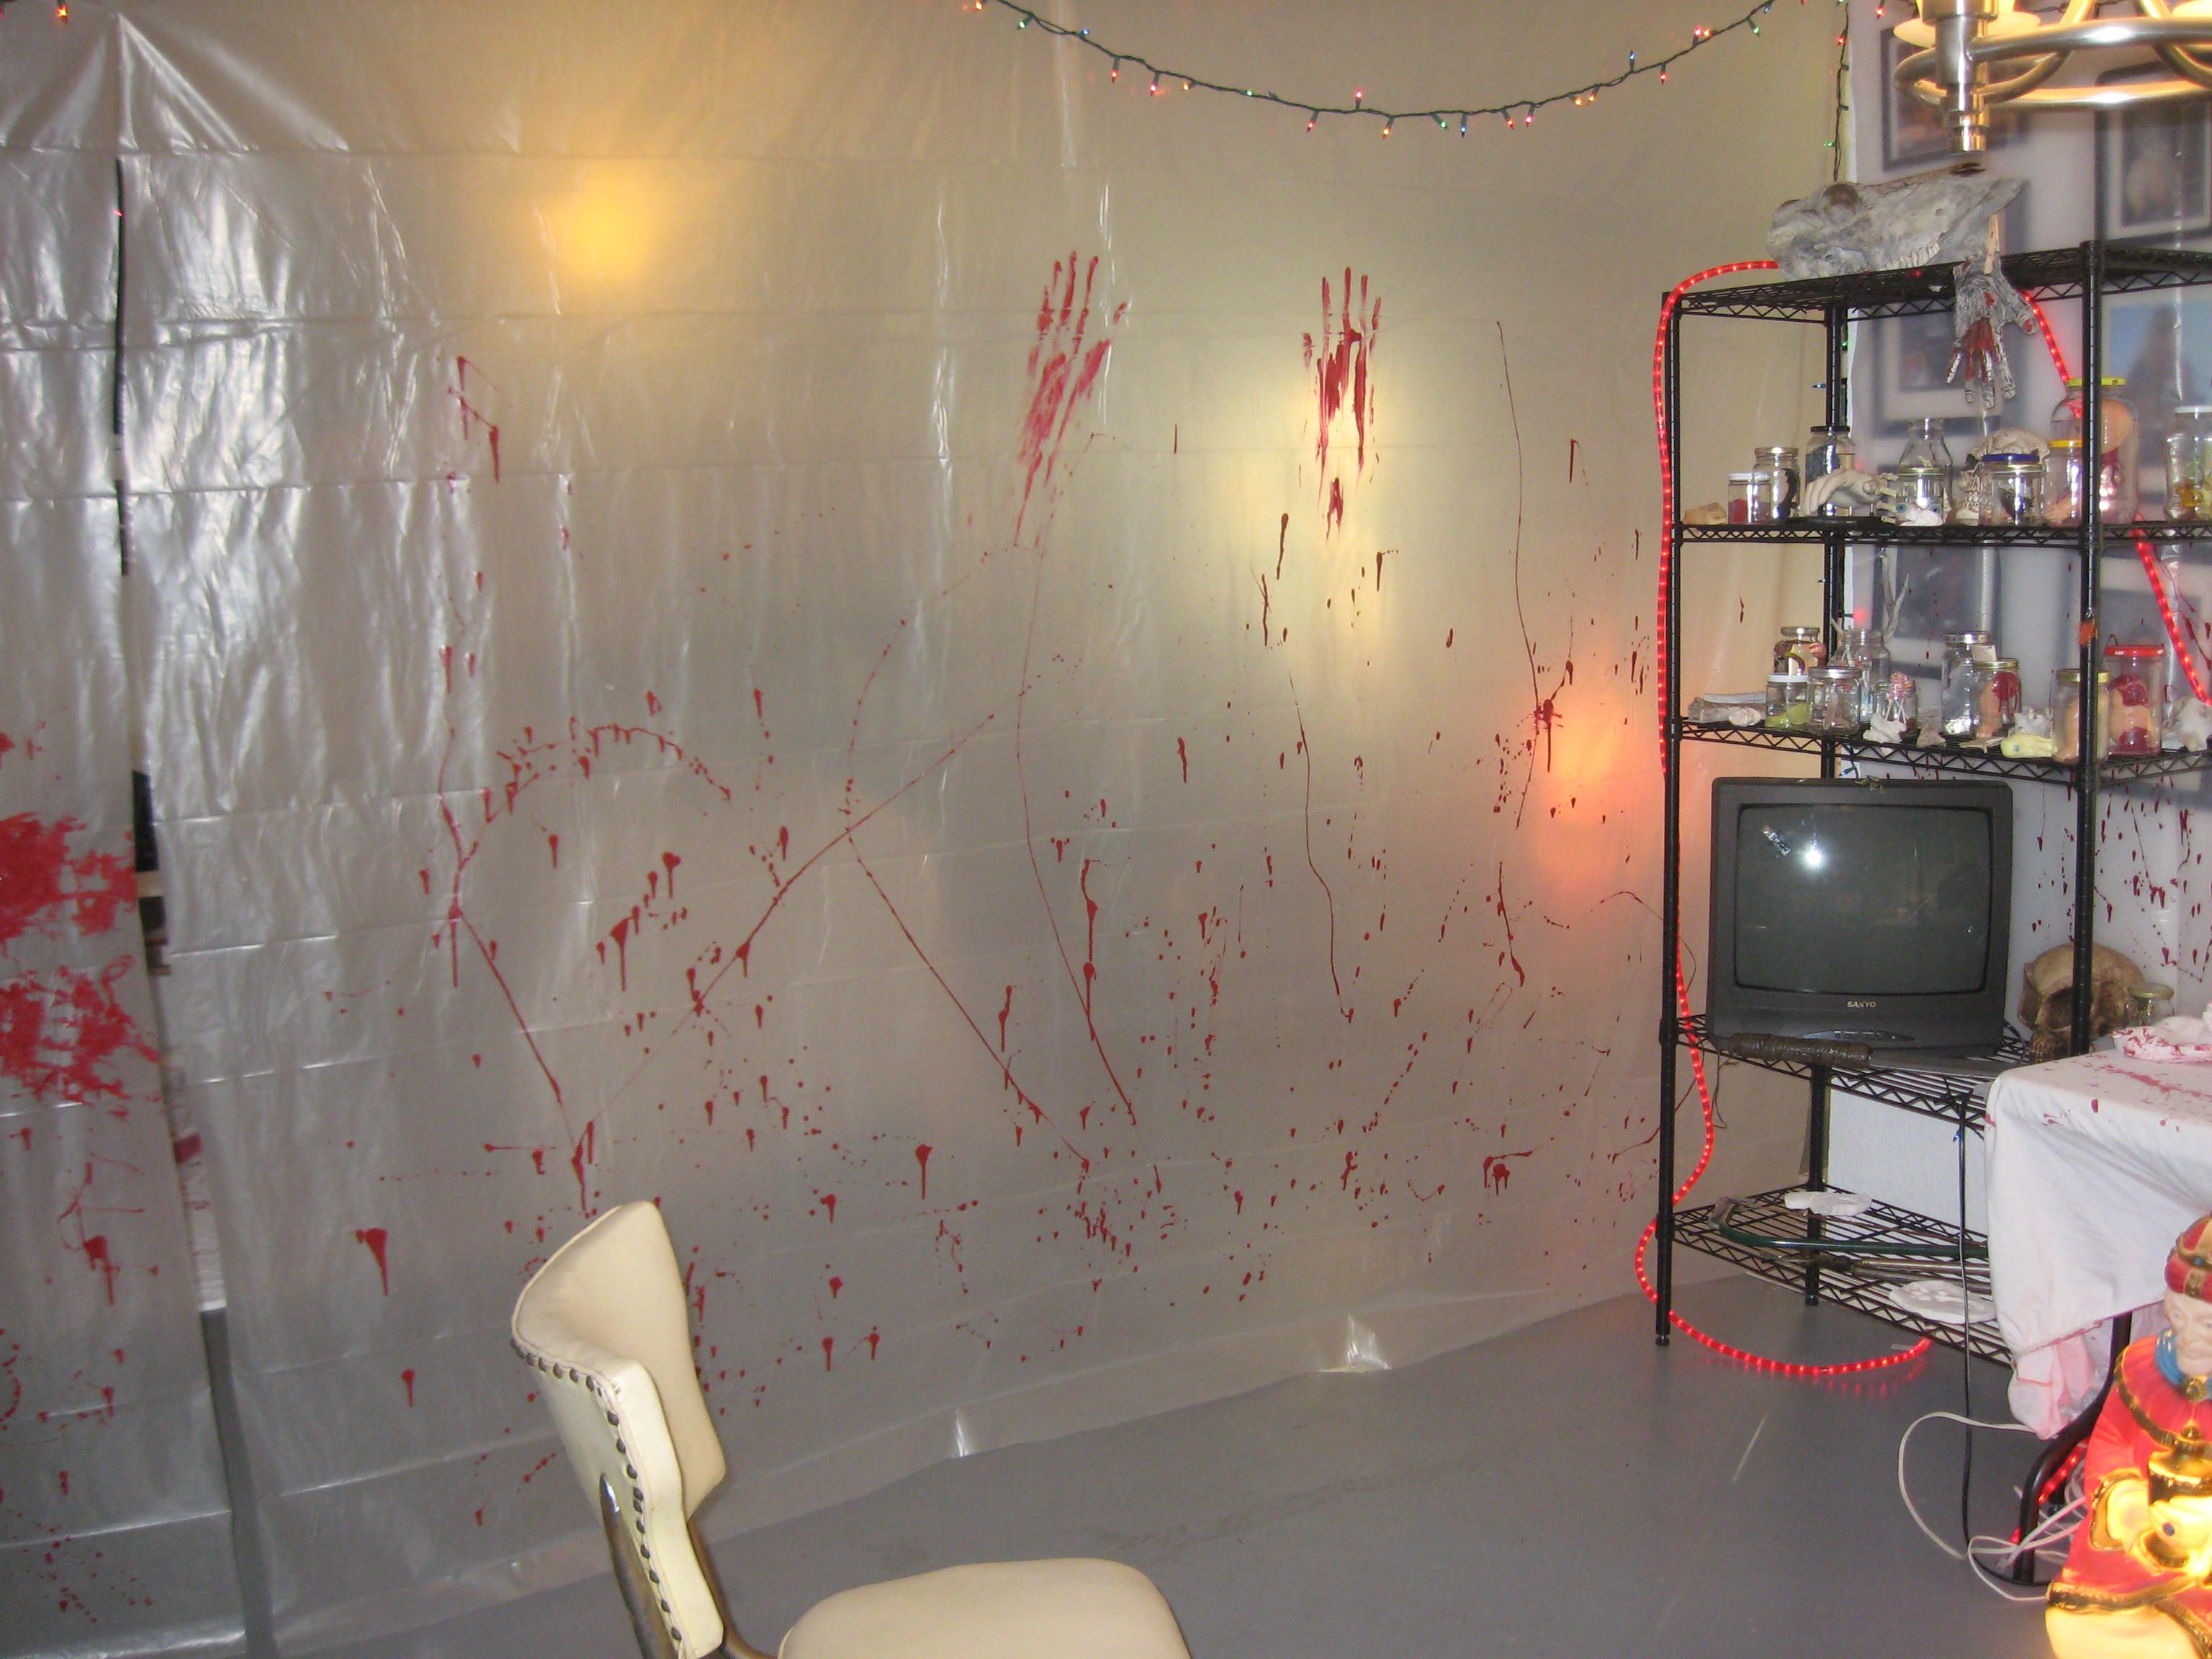 Hanging creepy blood stained plastic sheeting would give for Idee deco halloween